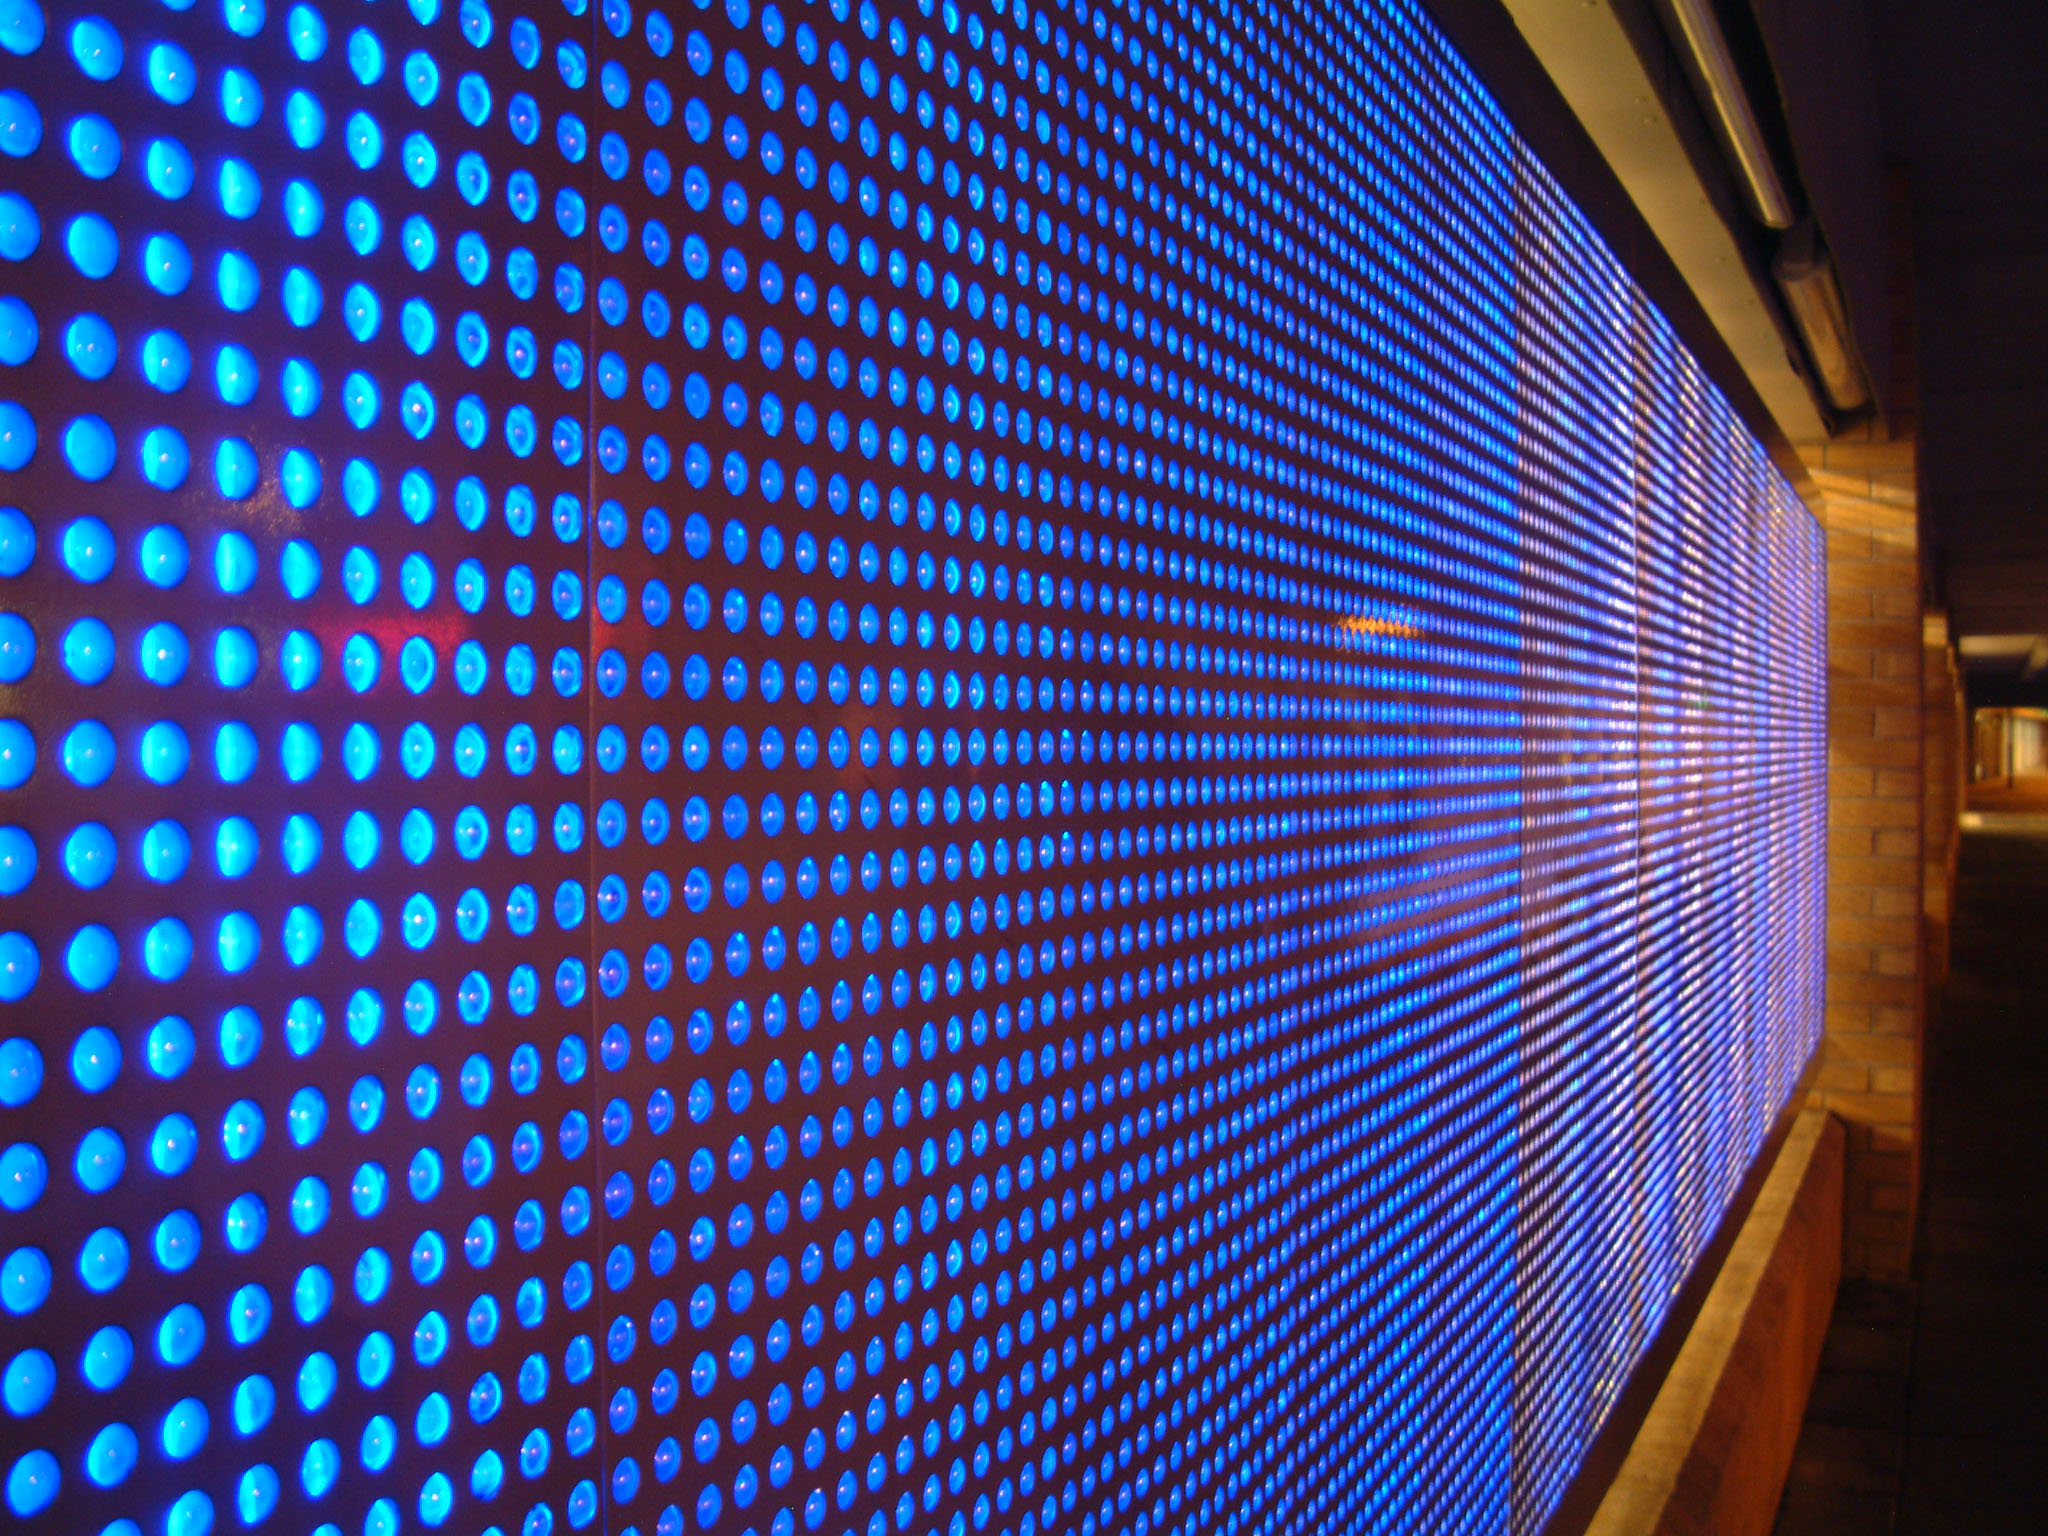 Coventry wall of light baynesco coventry wall of light aloadofball Image collections